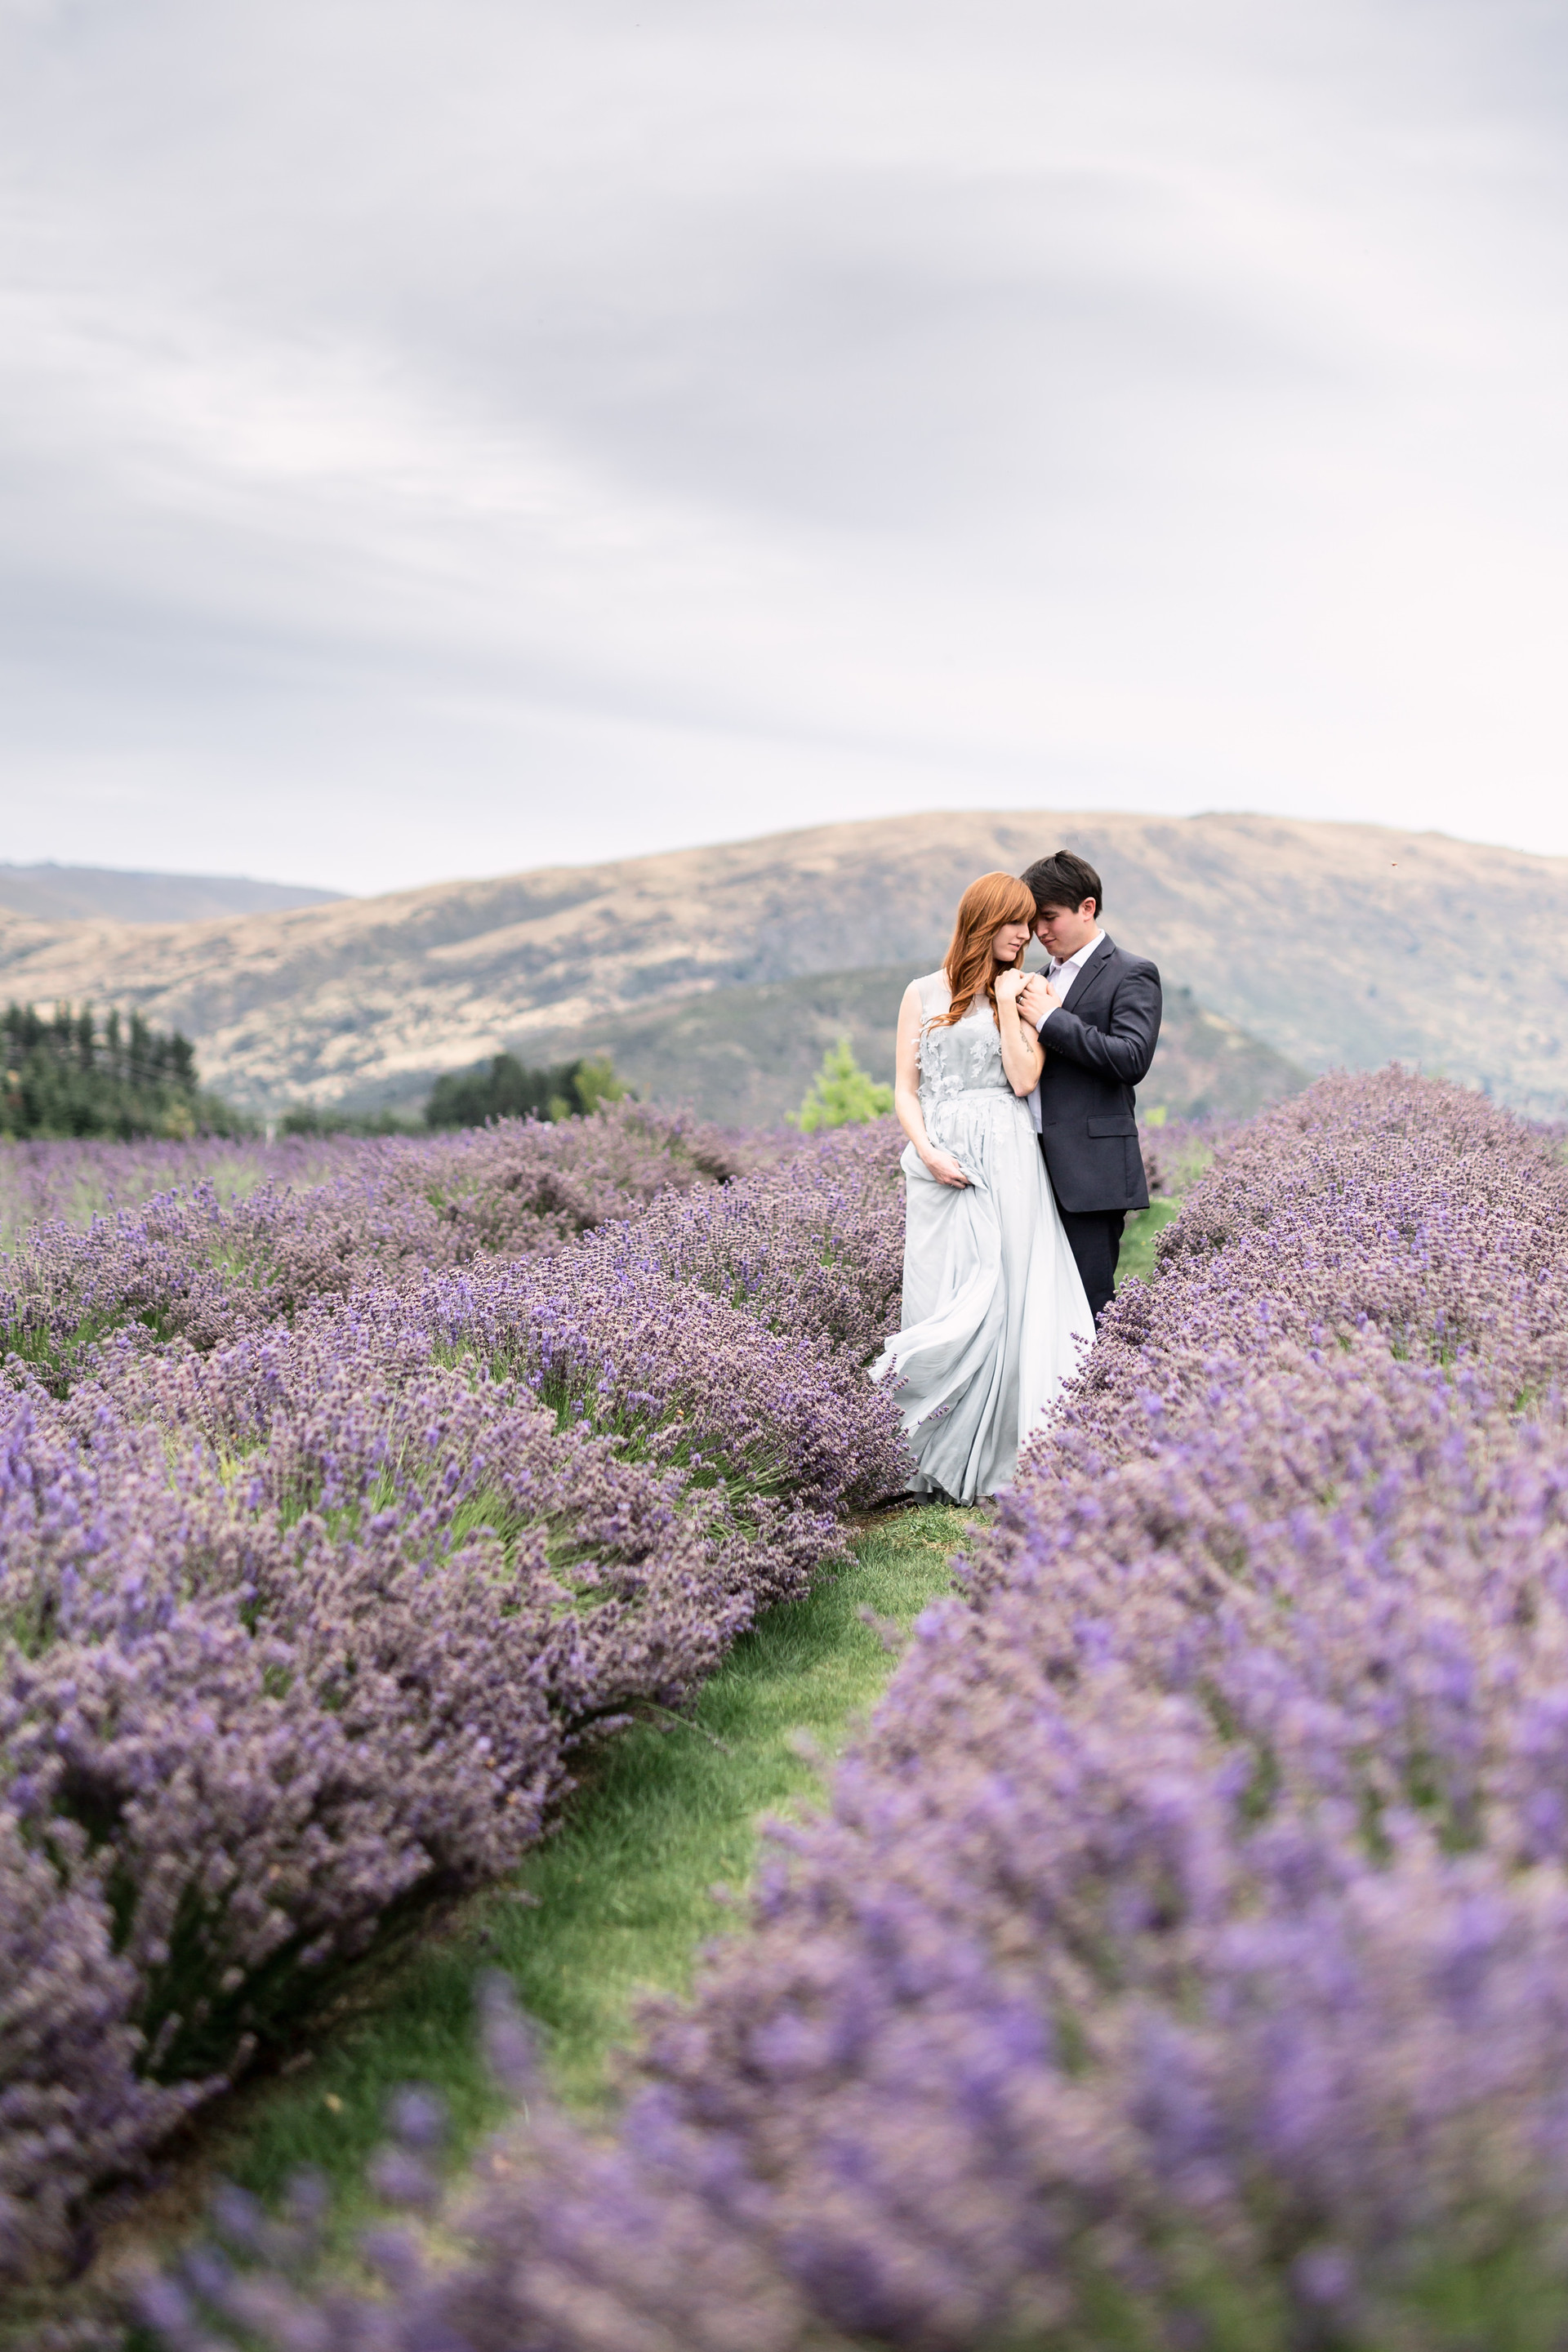 Lavender Farm - Engagament Photos - New Zealand - International Wedding Photographer MacCoy Dean